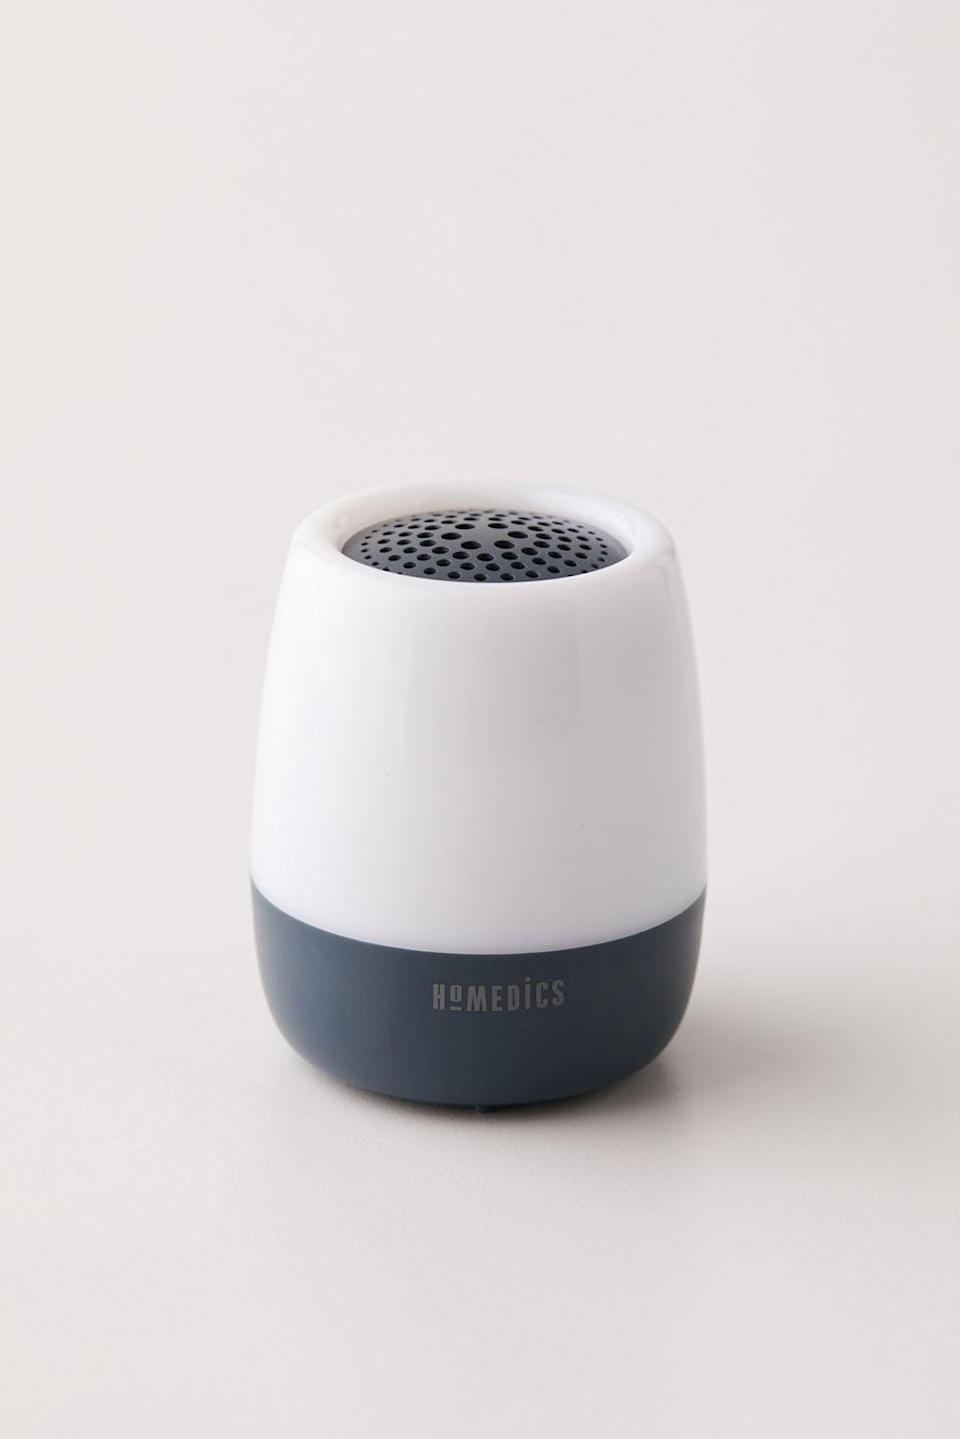 <p>If they have a hard time sleeping in unfamiliar Airbnb's or hotel rooms, this <span>HoMedics SoundSpa Traveler Portable Sound Machine</span> ($25) will put them at ease. It has six sounds including brook, ocean, white noise, flute, ASMR tapping and thunderstorm with an auto-off timer. It's rechargable and doubles as a nightlight as well!</p>